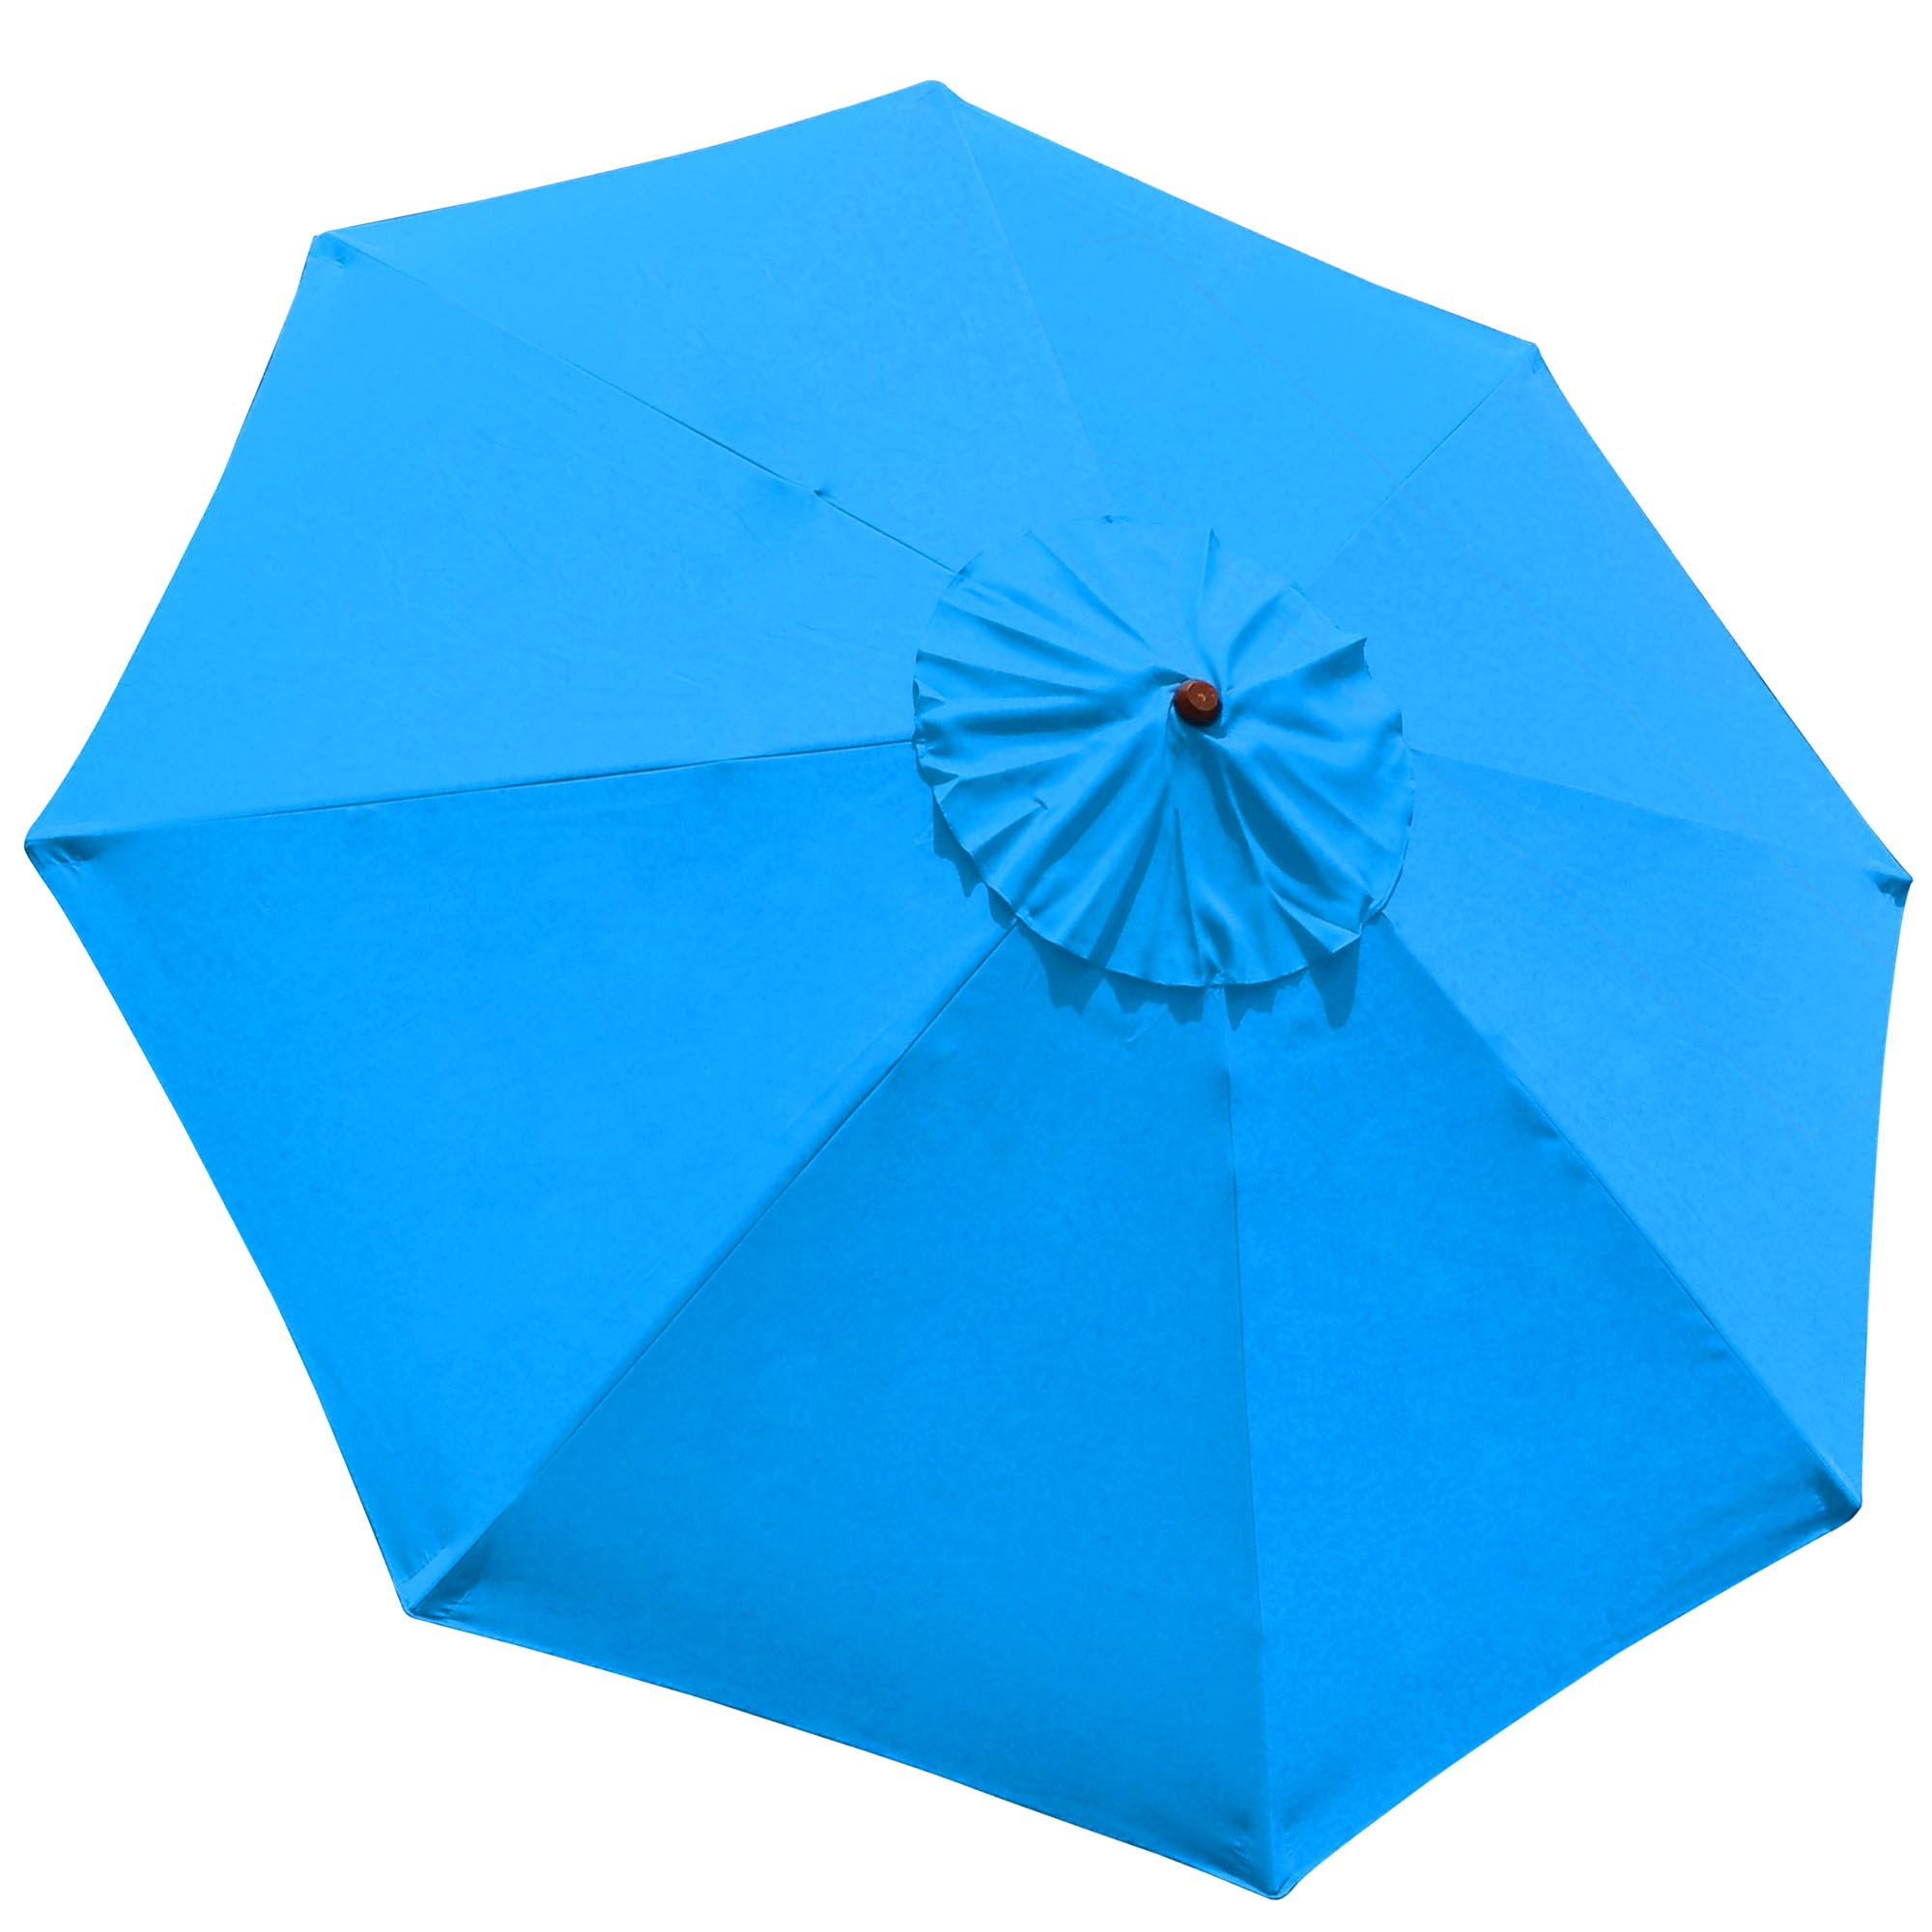 9FT Patio Umbrella Replacement Canopy Top Cover 8 Ribs Market